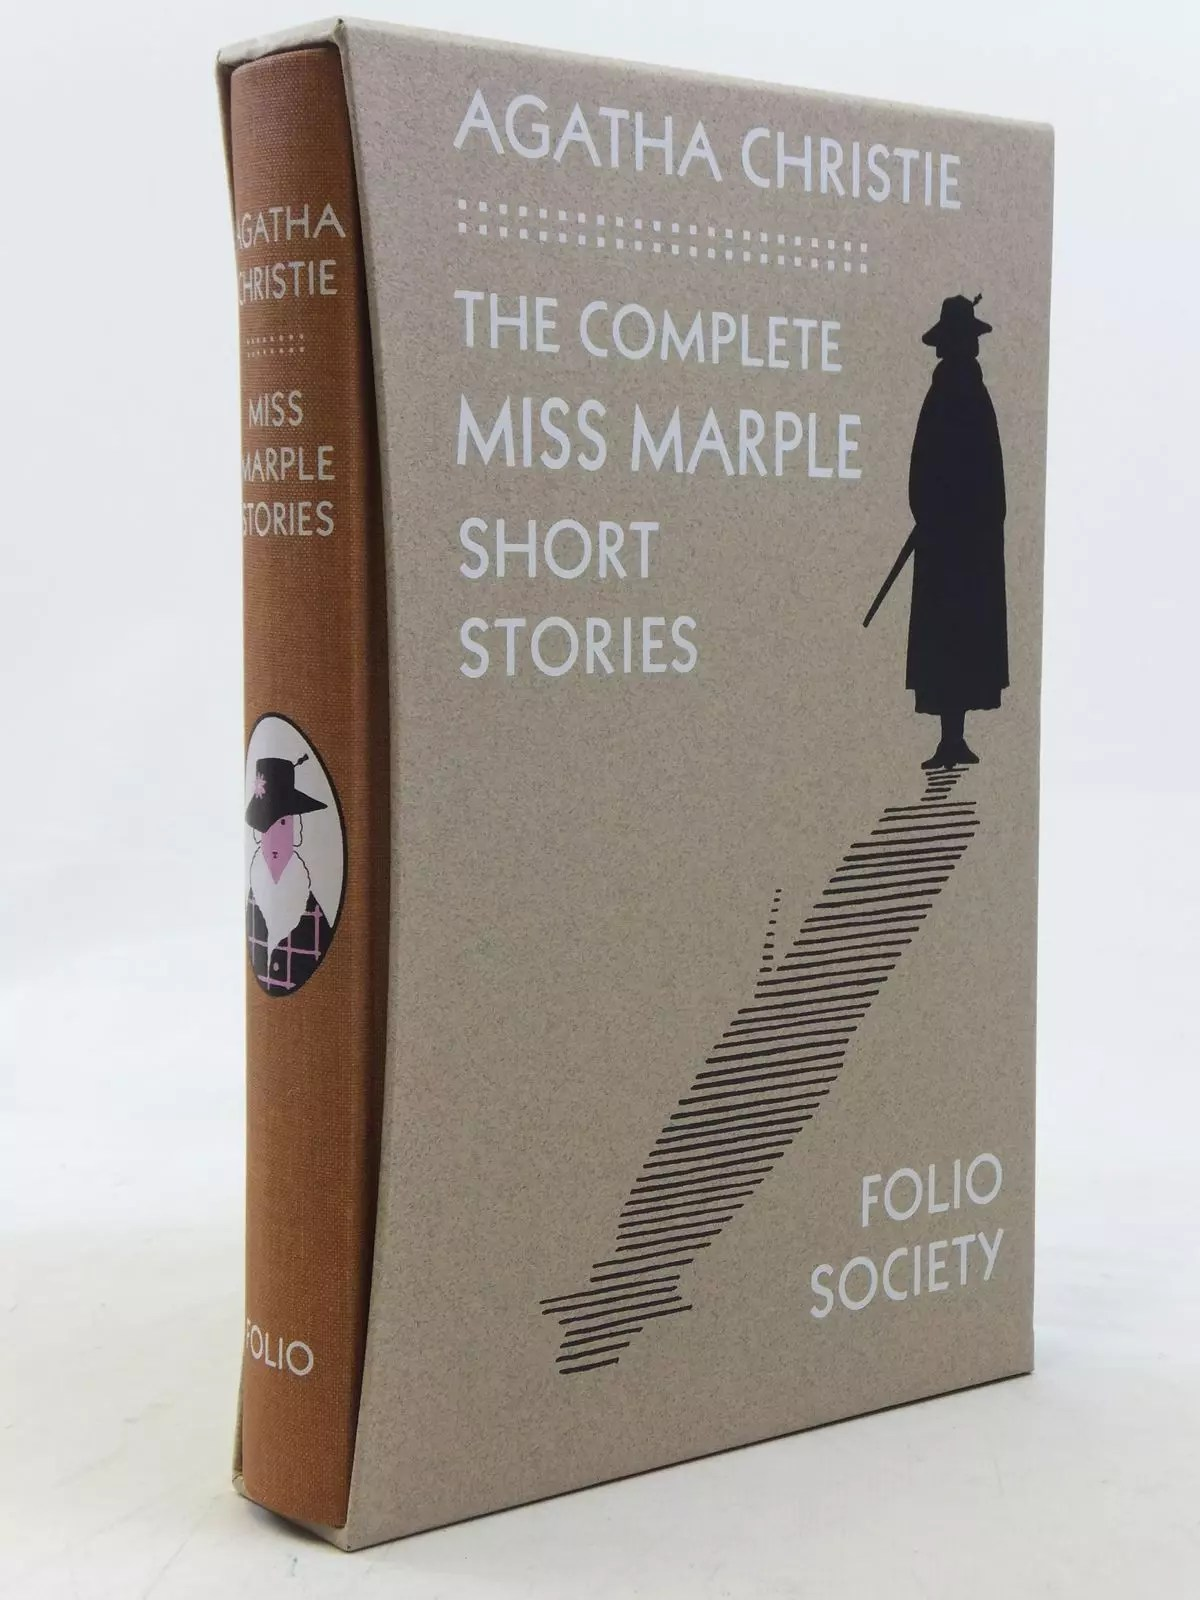 agatha christie FS miss marple christopher brown v1 2003 slipcase